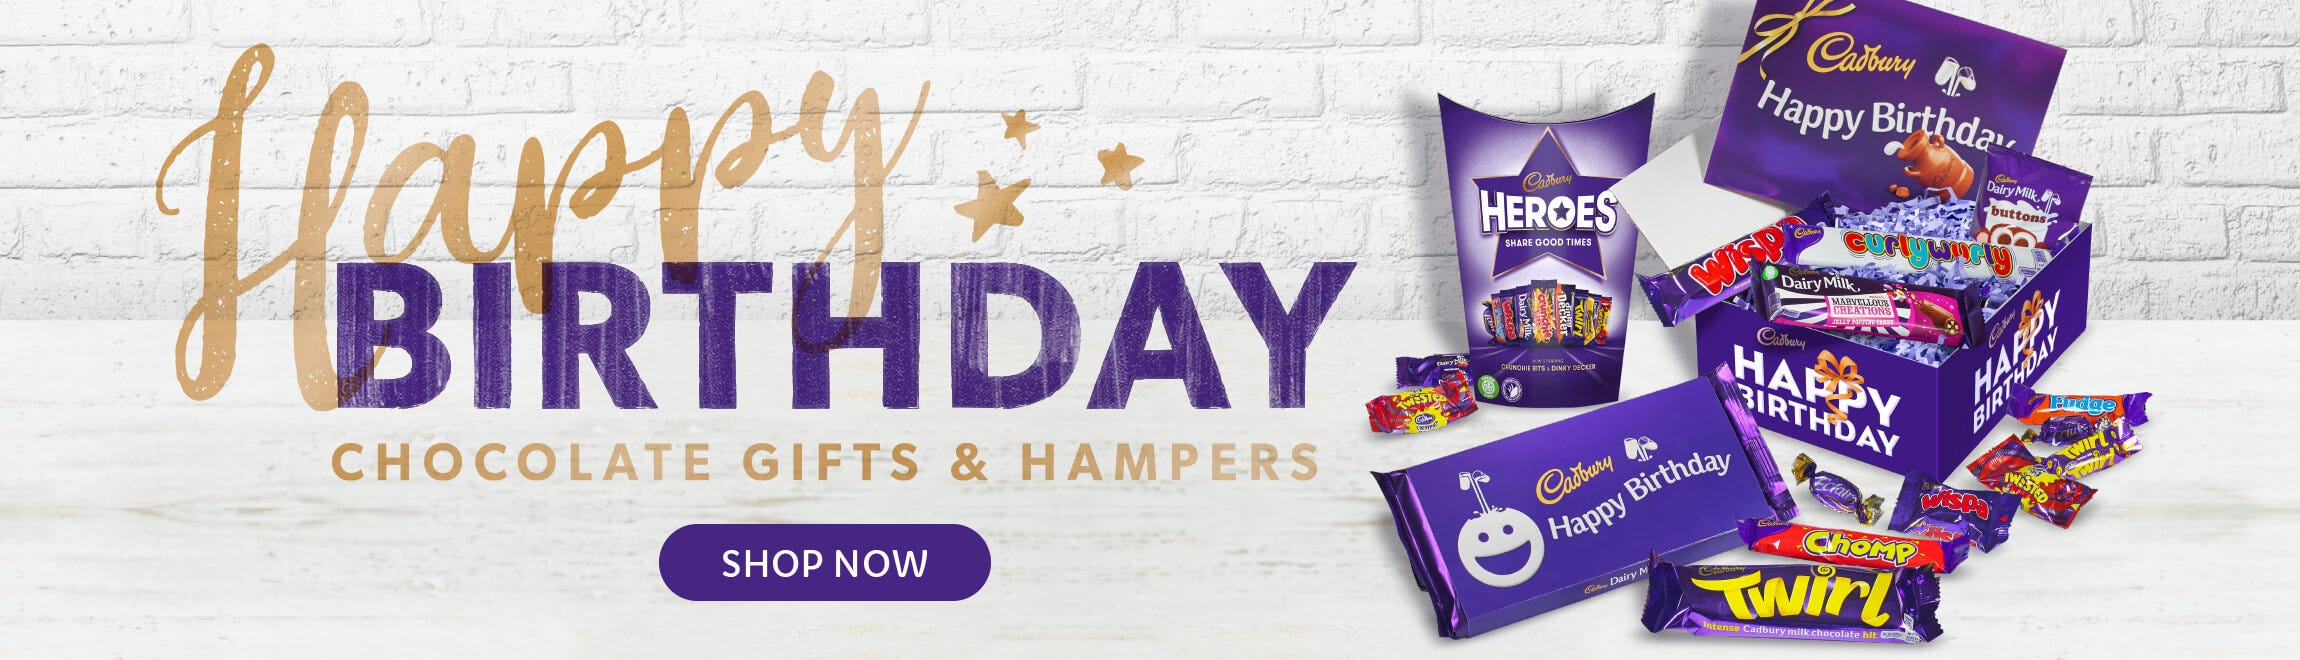 Cadbury Birthday Gifts and Hampers